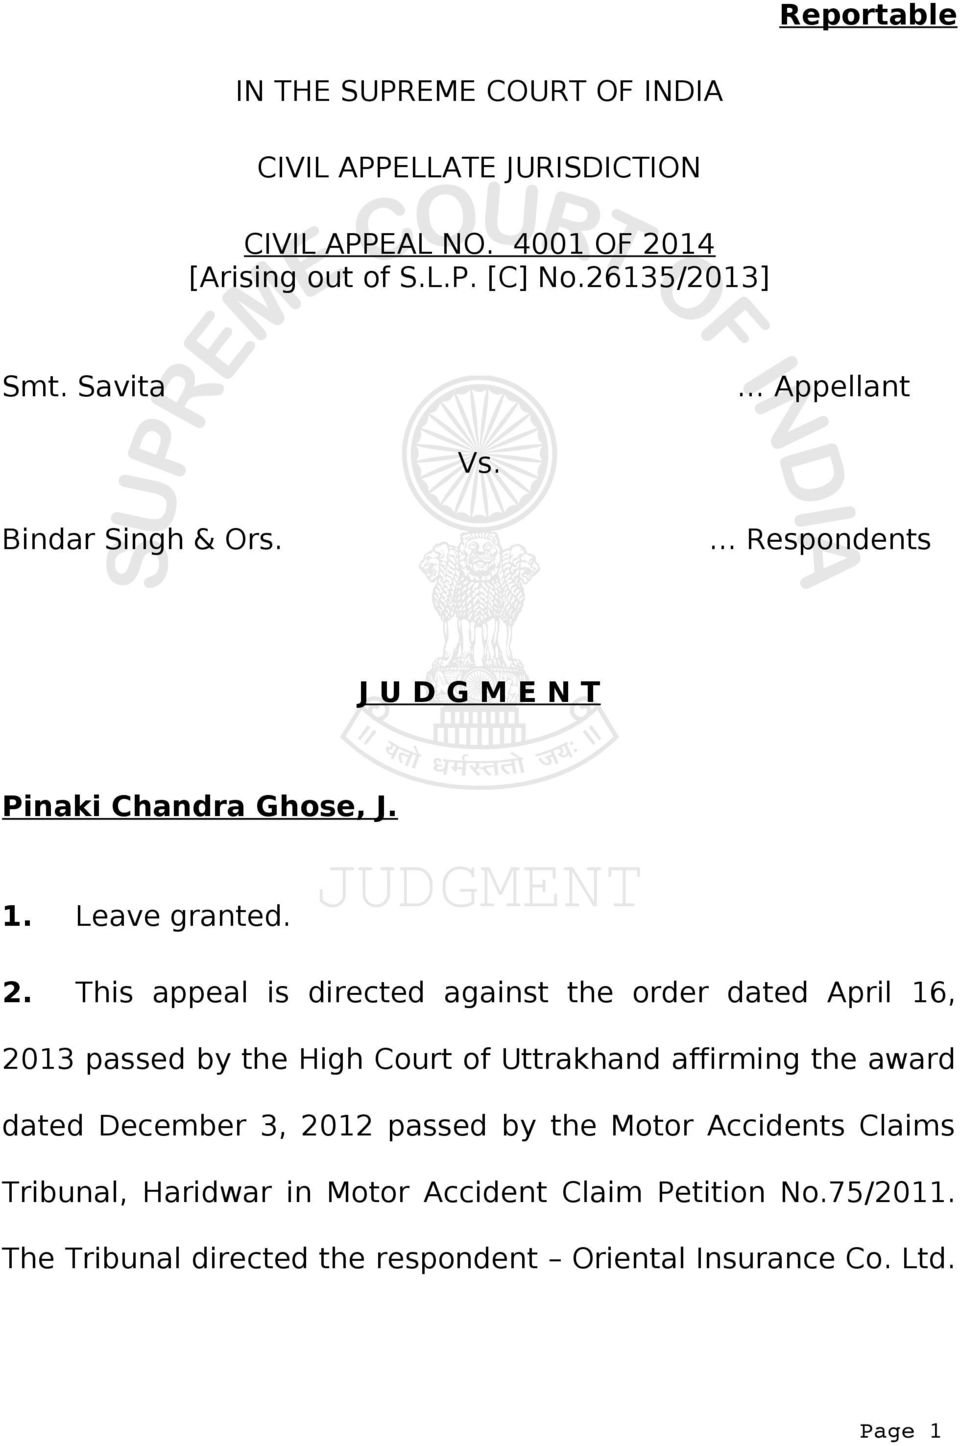 This appeal is directed against the order dated April 16, 2013 passed by the High Court of Uttrakhand affirming the award dated December 3, 2012